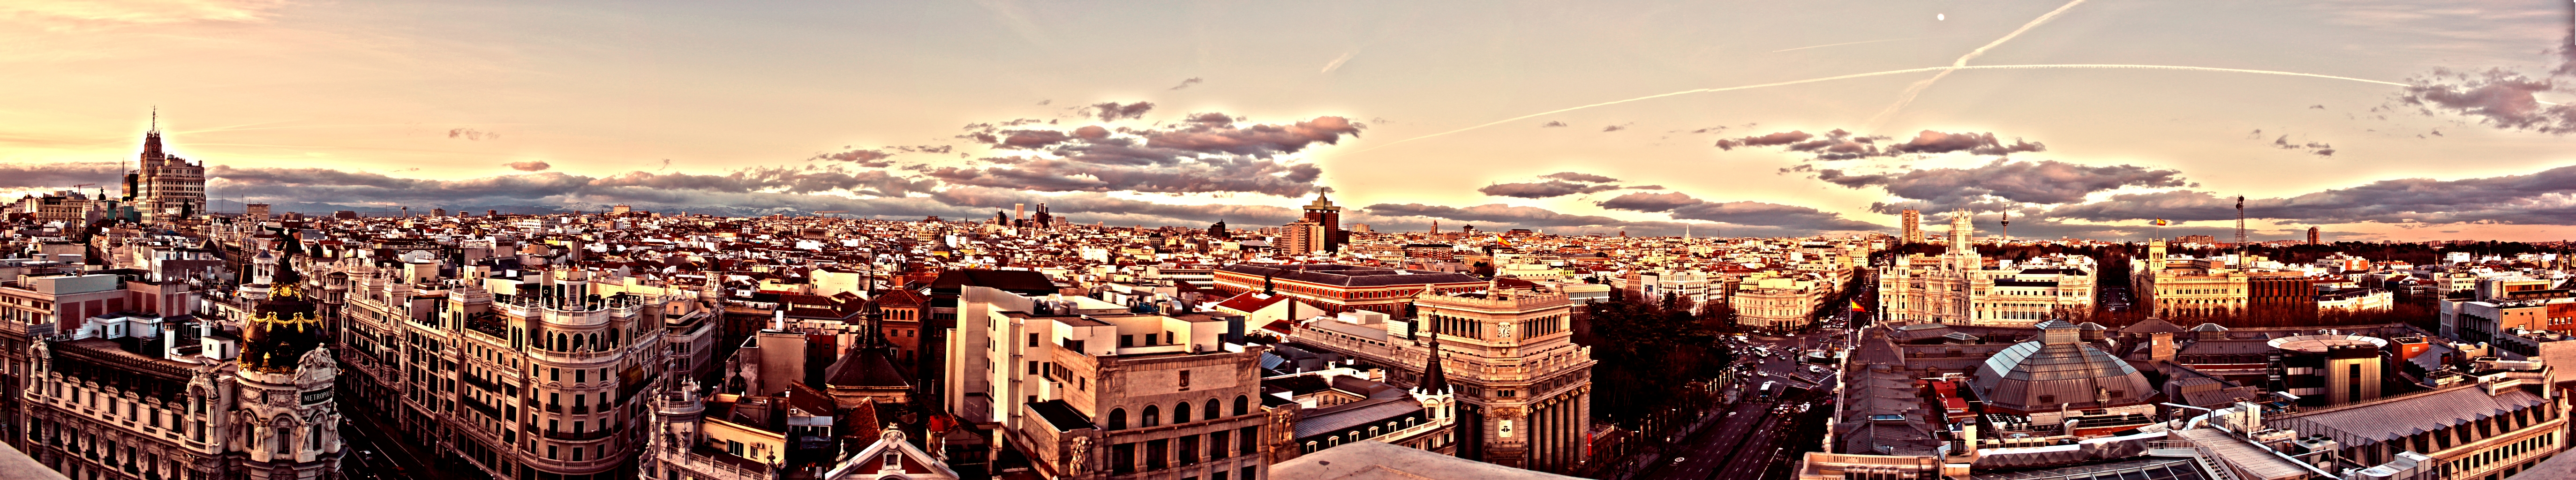 madrid-panoramica